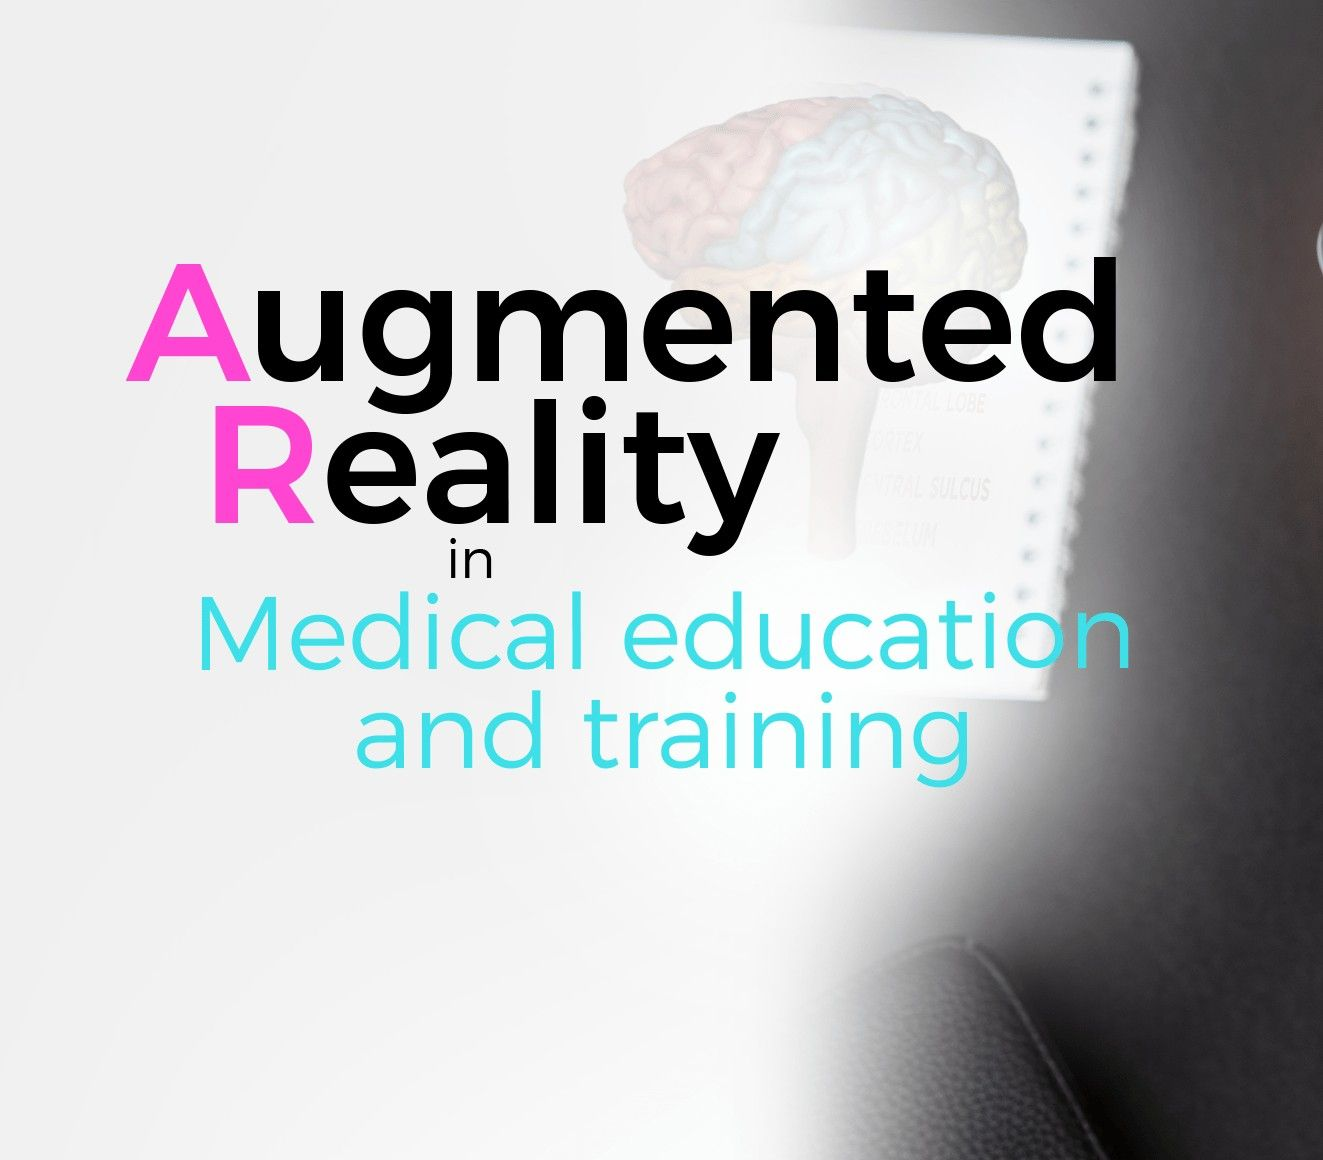 The potential of augmented reality in medical education and training